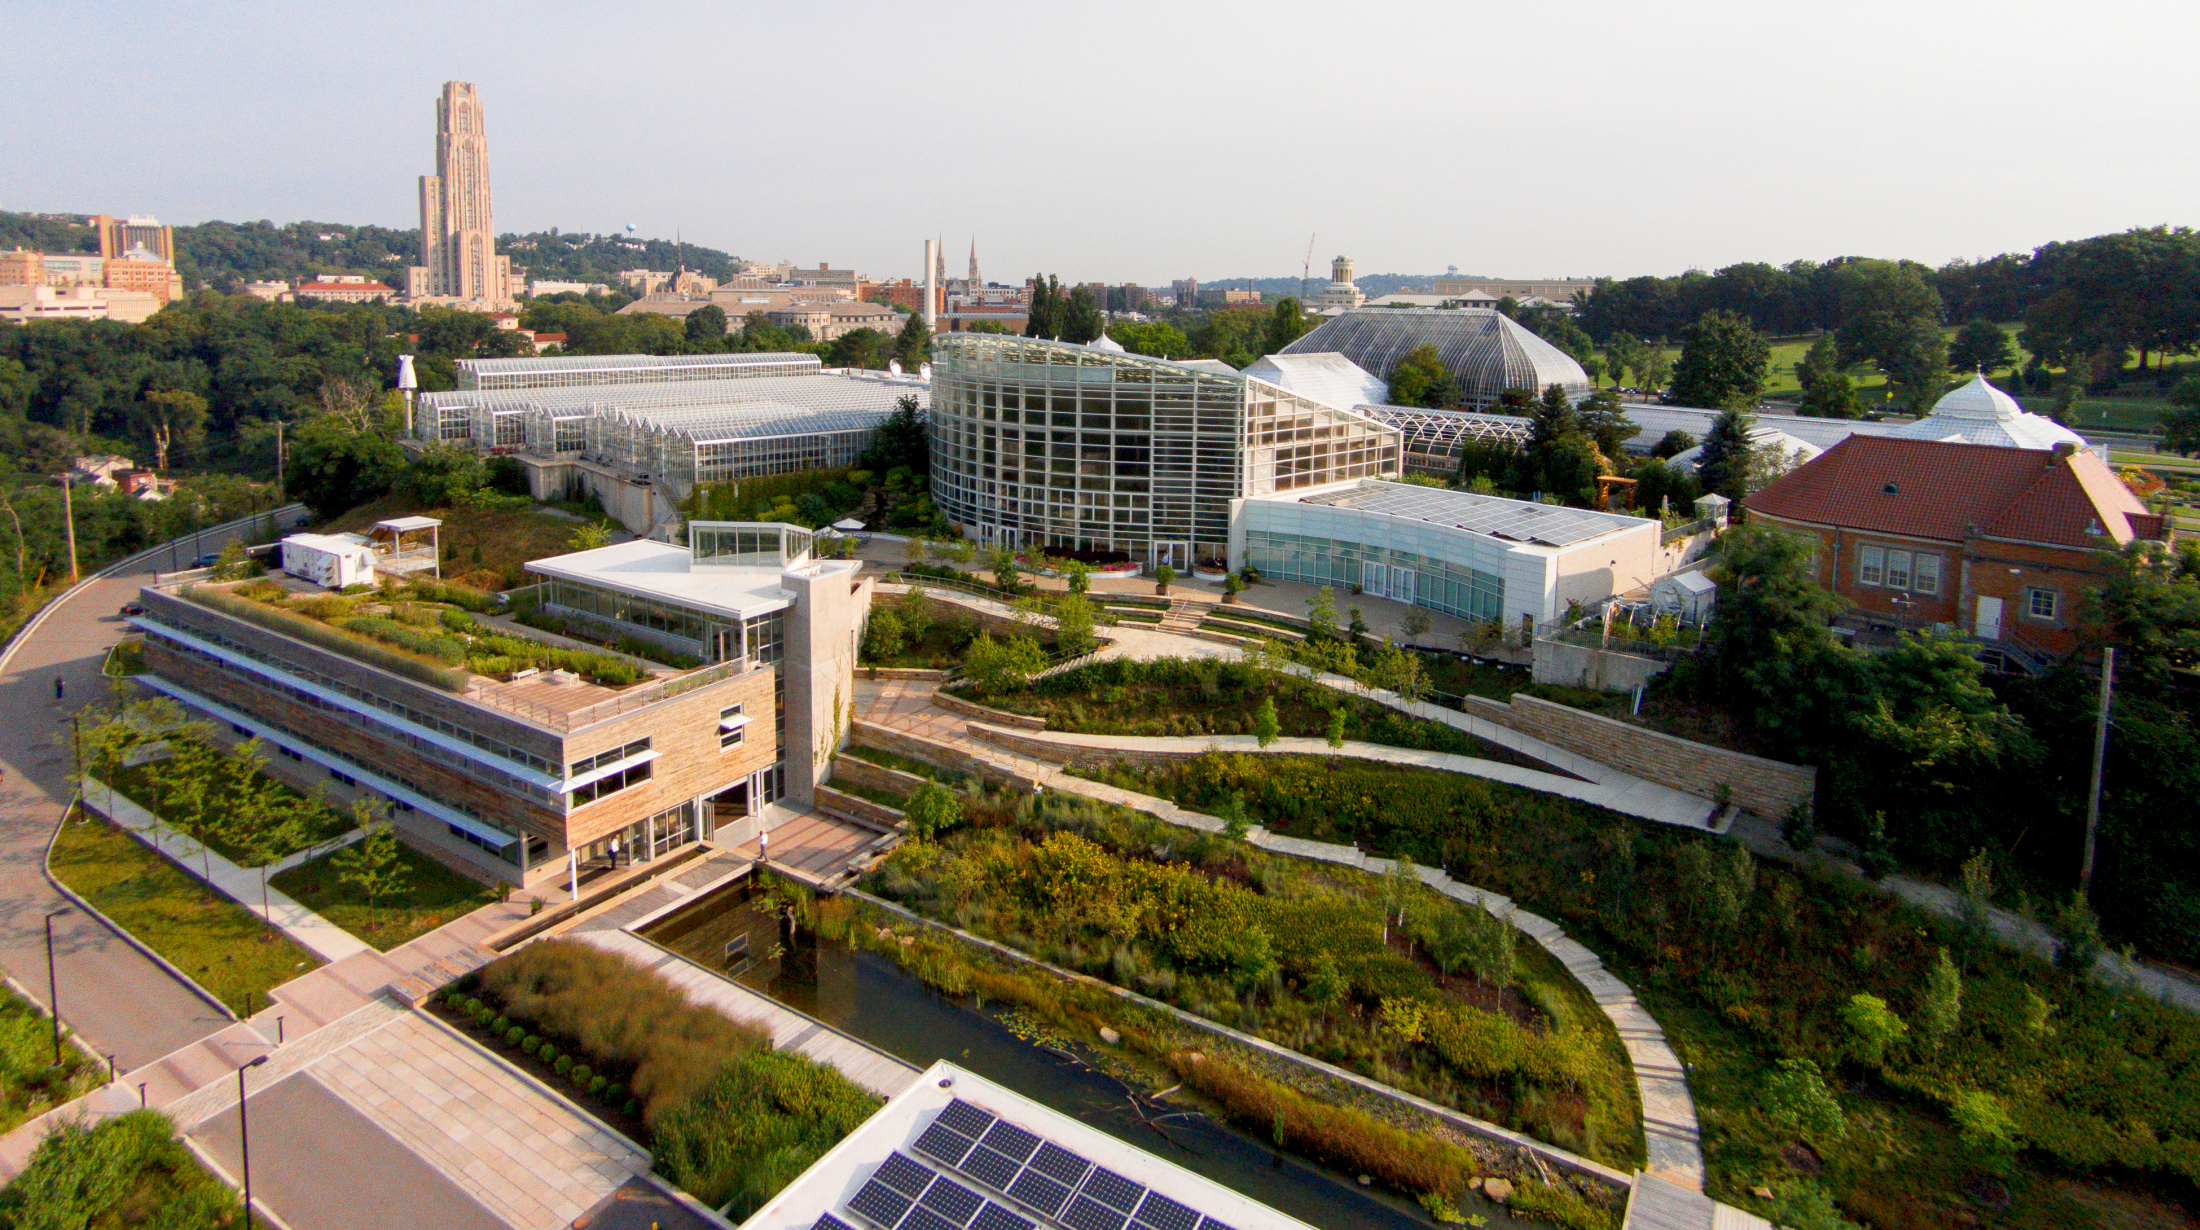 Center for sustainable landscapes one of the greenest for Sustainable landscape design